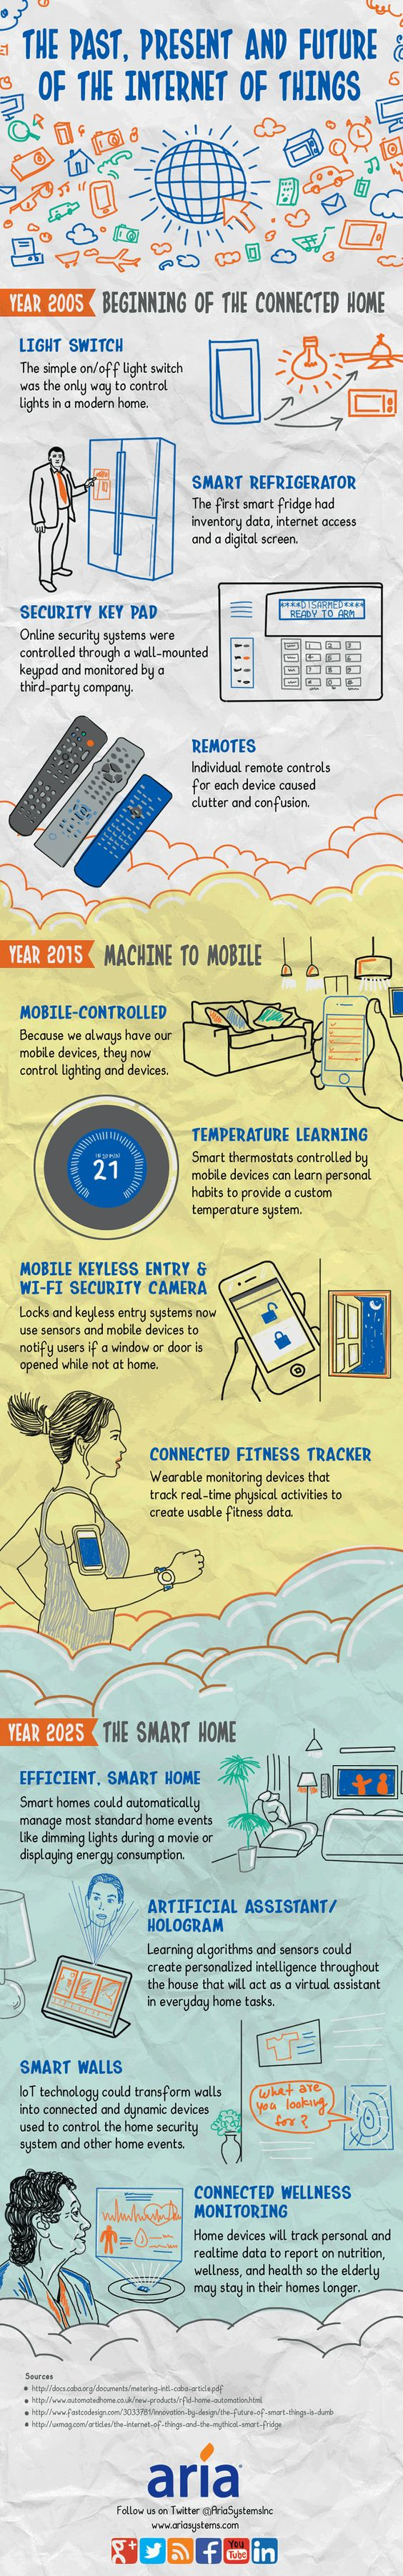 What the Internet of Things Will Look Like in 2025 (Infographic) | Inc.com: